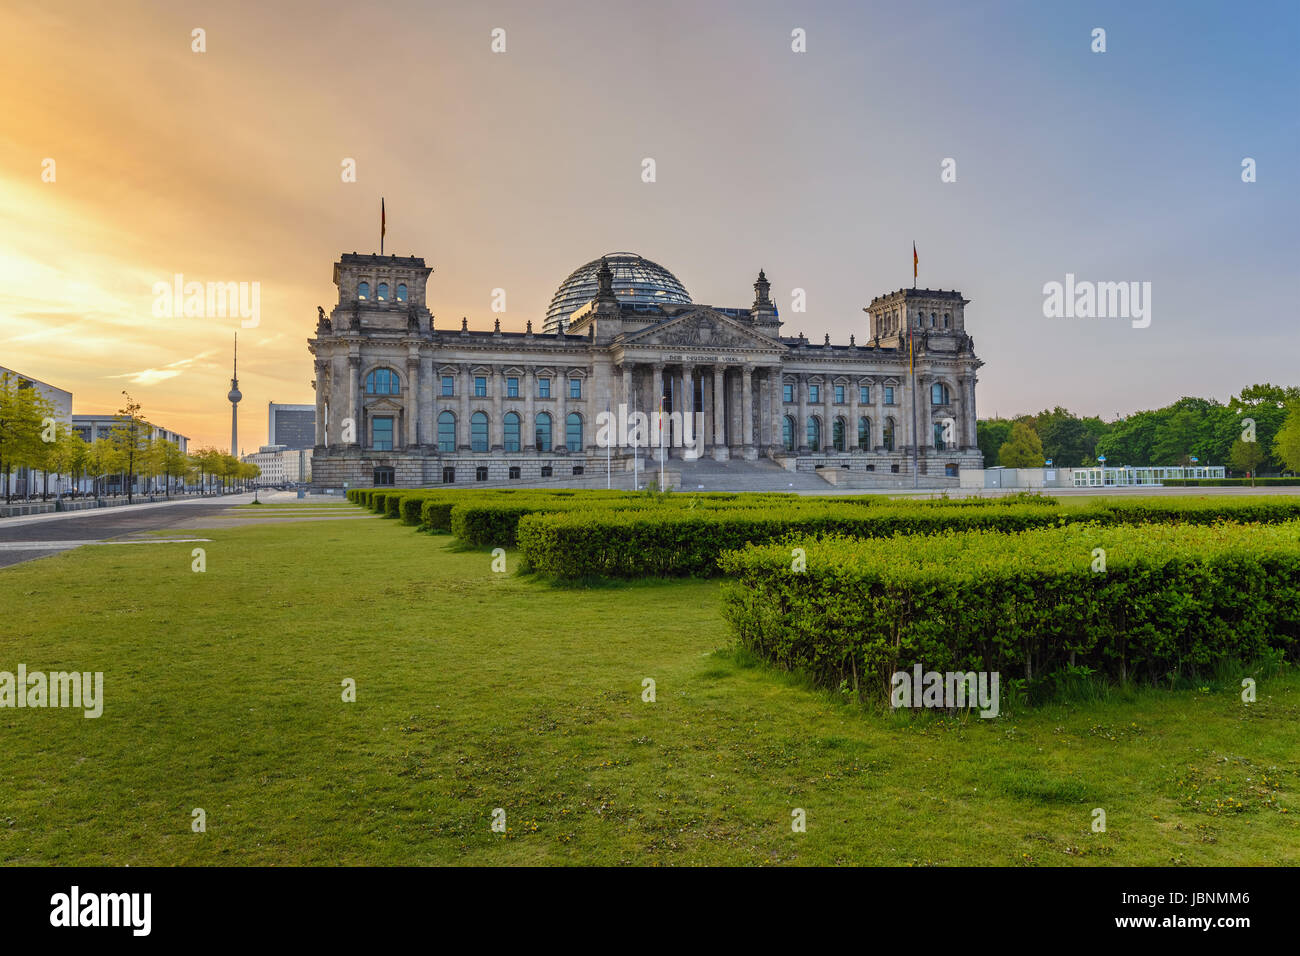 Berlino Reichstag (parlamento tedesco edificio) quando sunrise, Berlino, Germania Immagini Stock